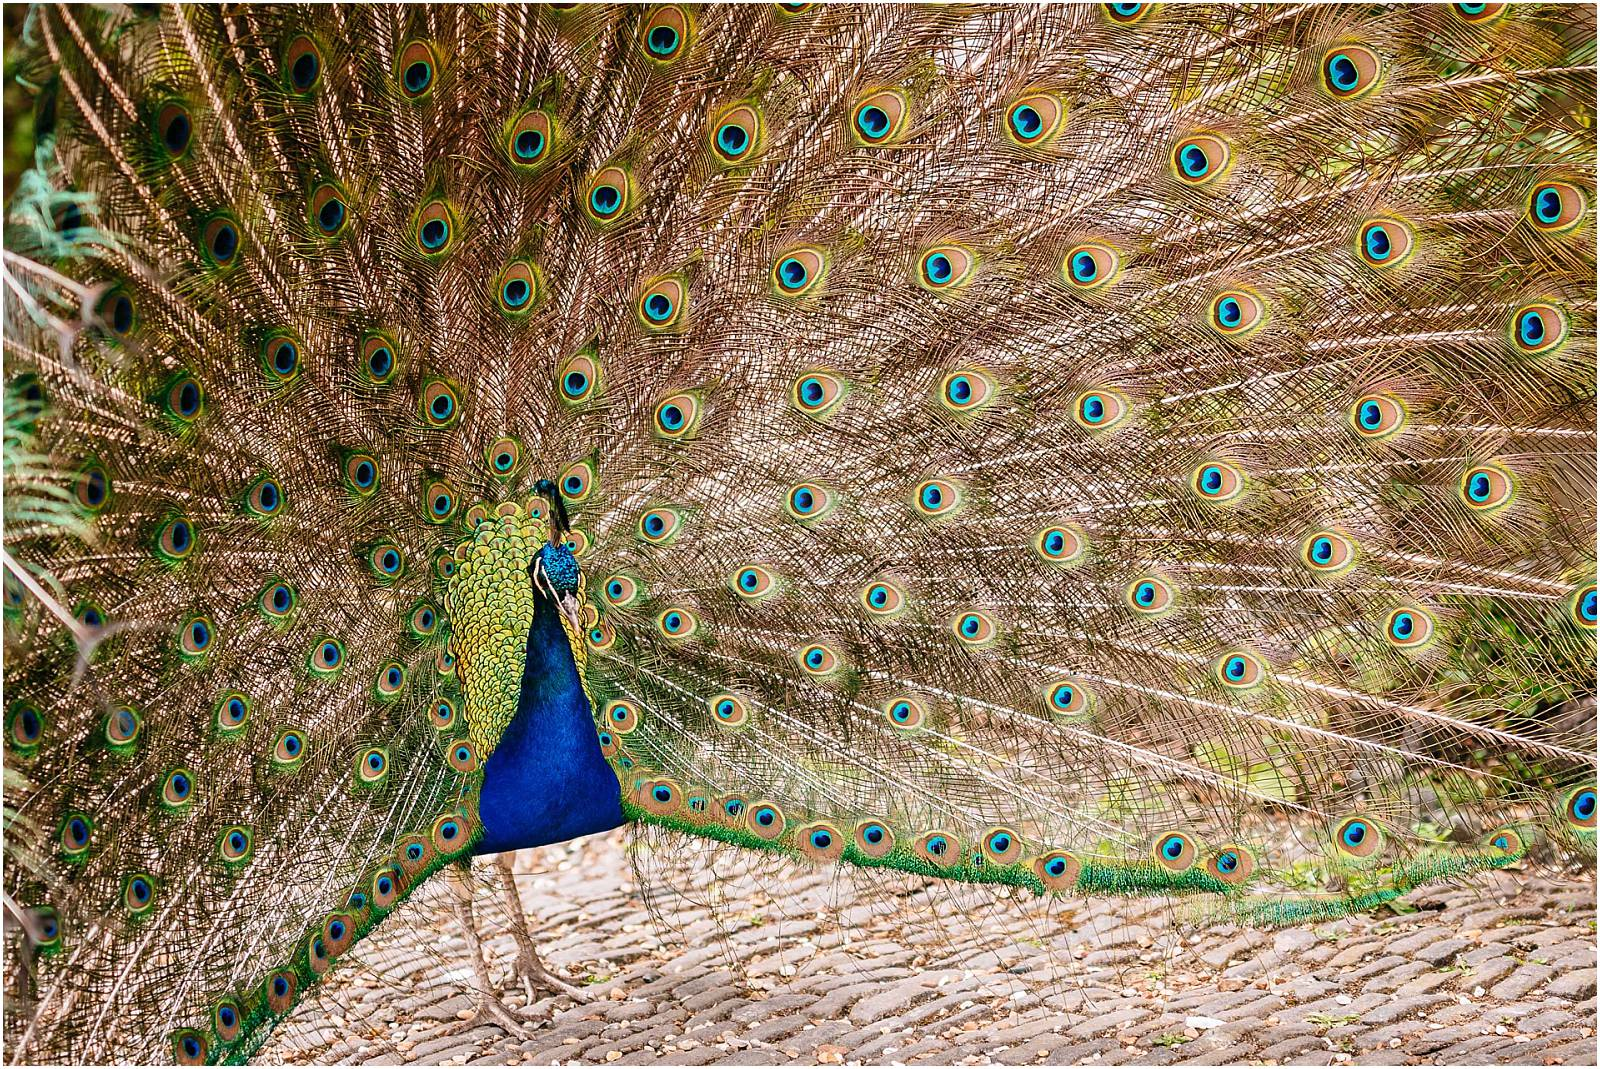 northbrook park peacock